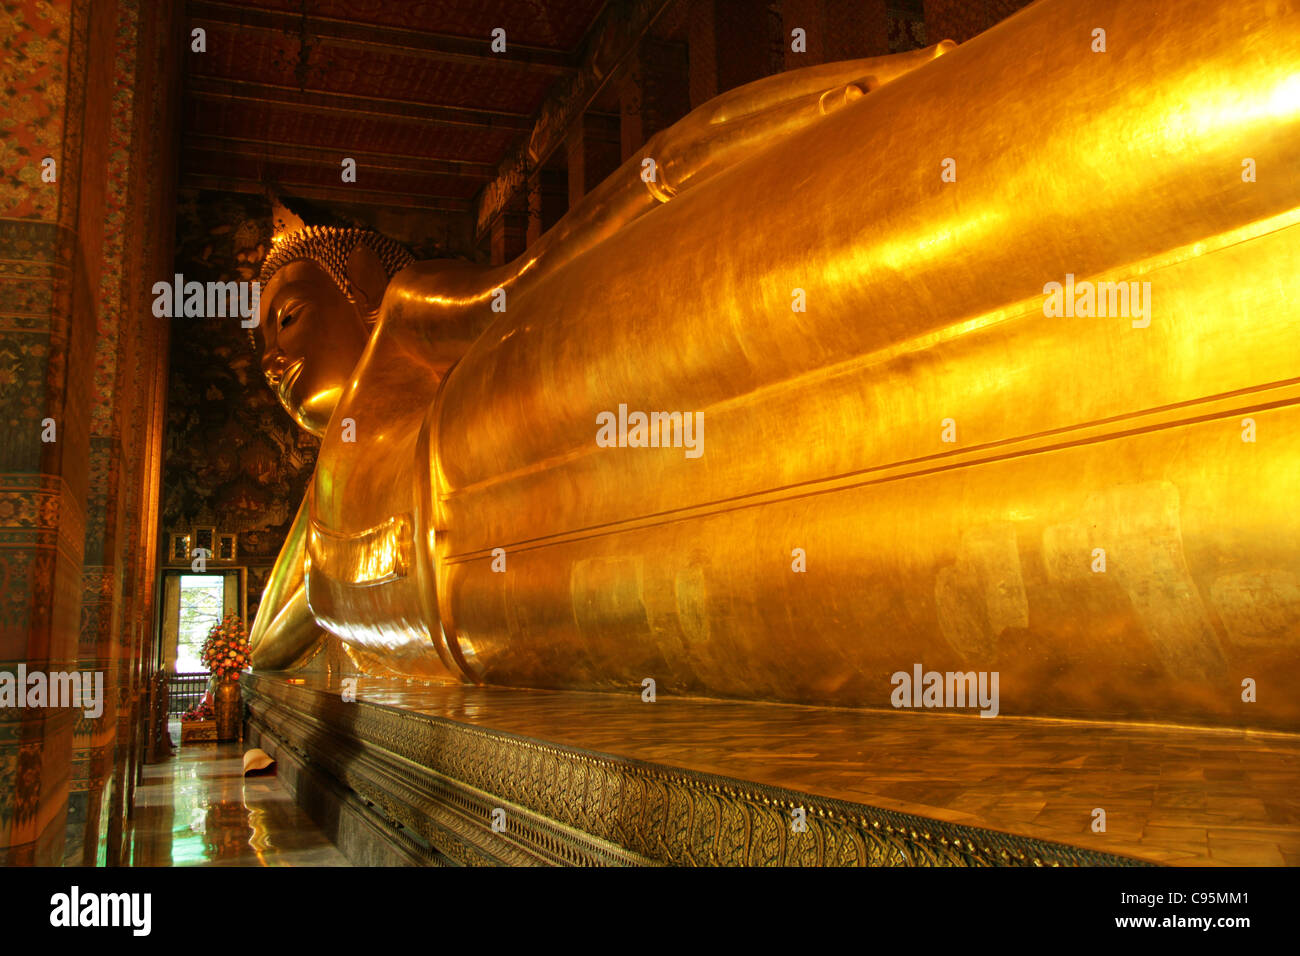 Wat Pho  (Temple of the Reclining Buddha) - Stock Image